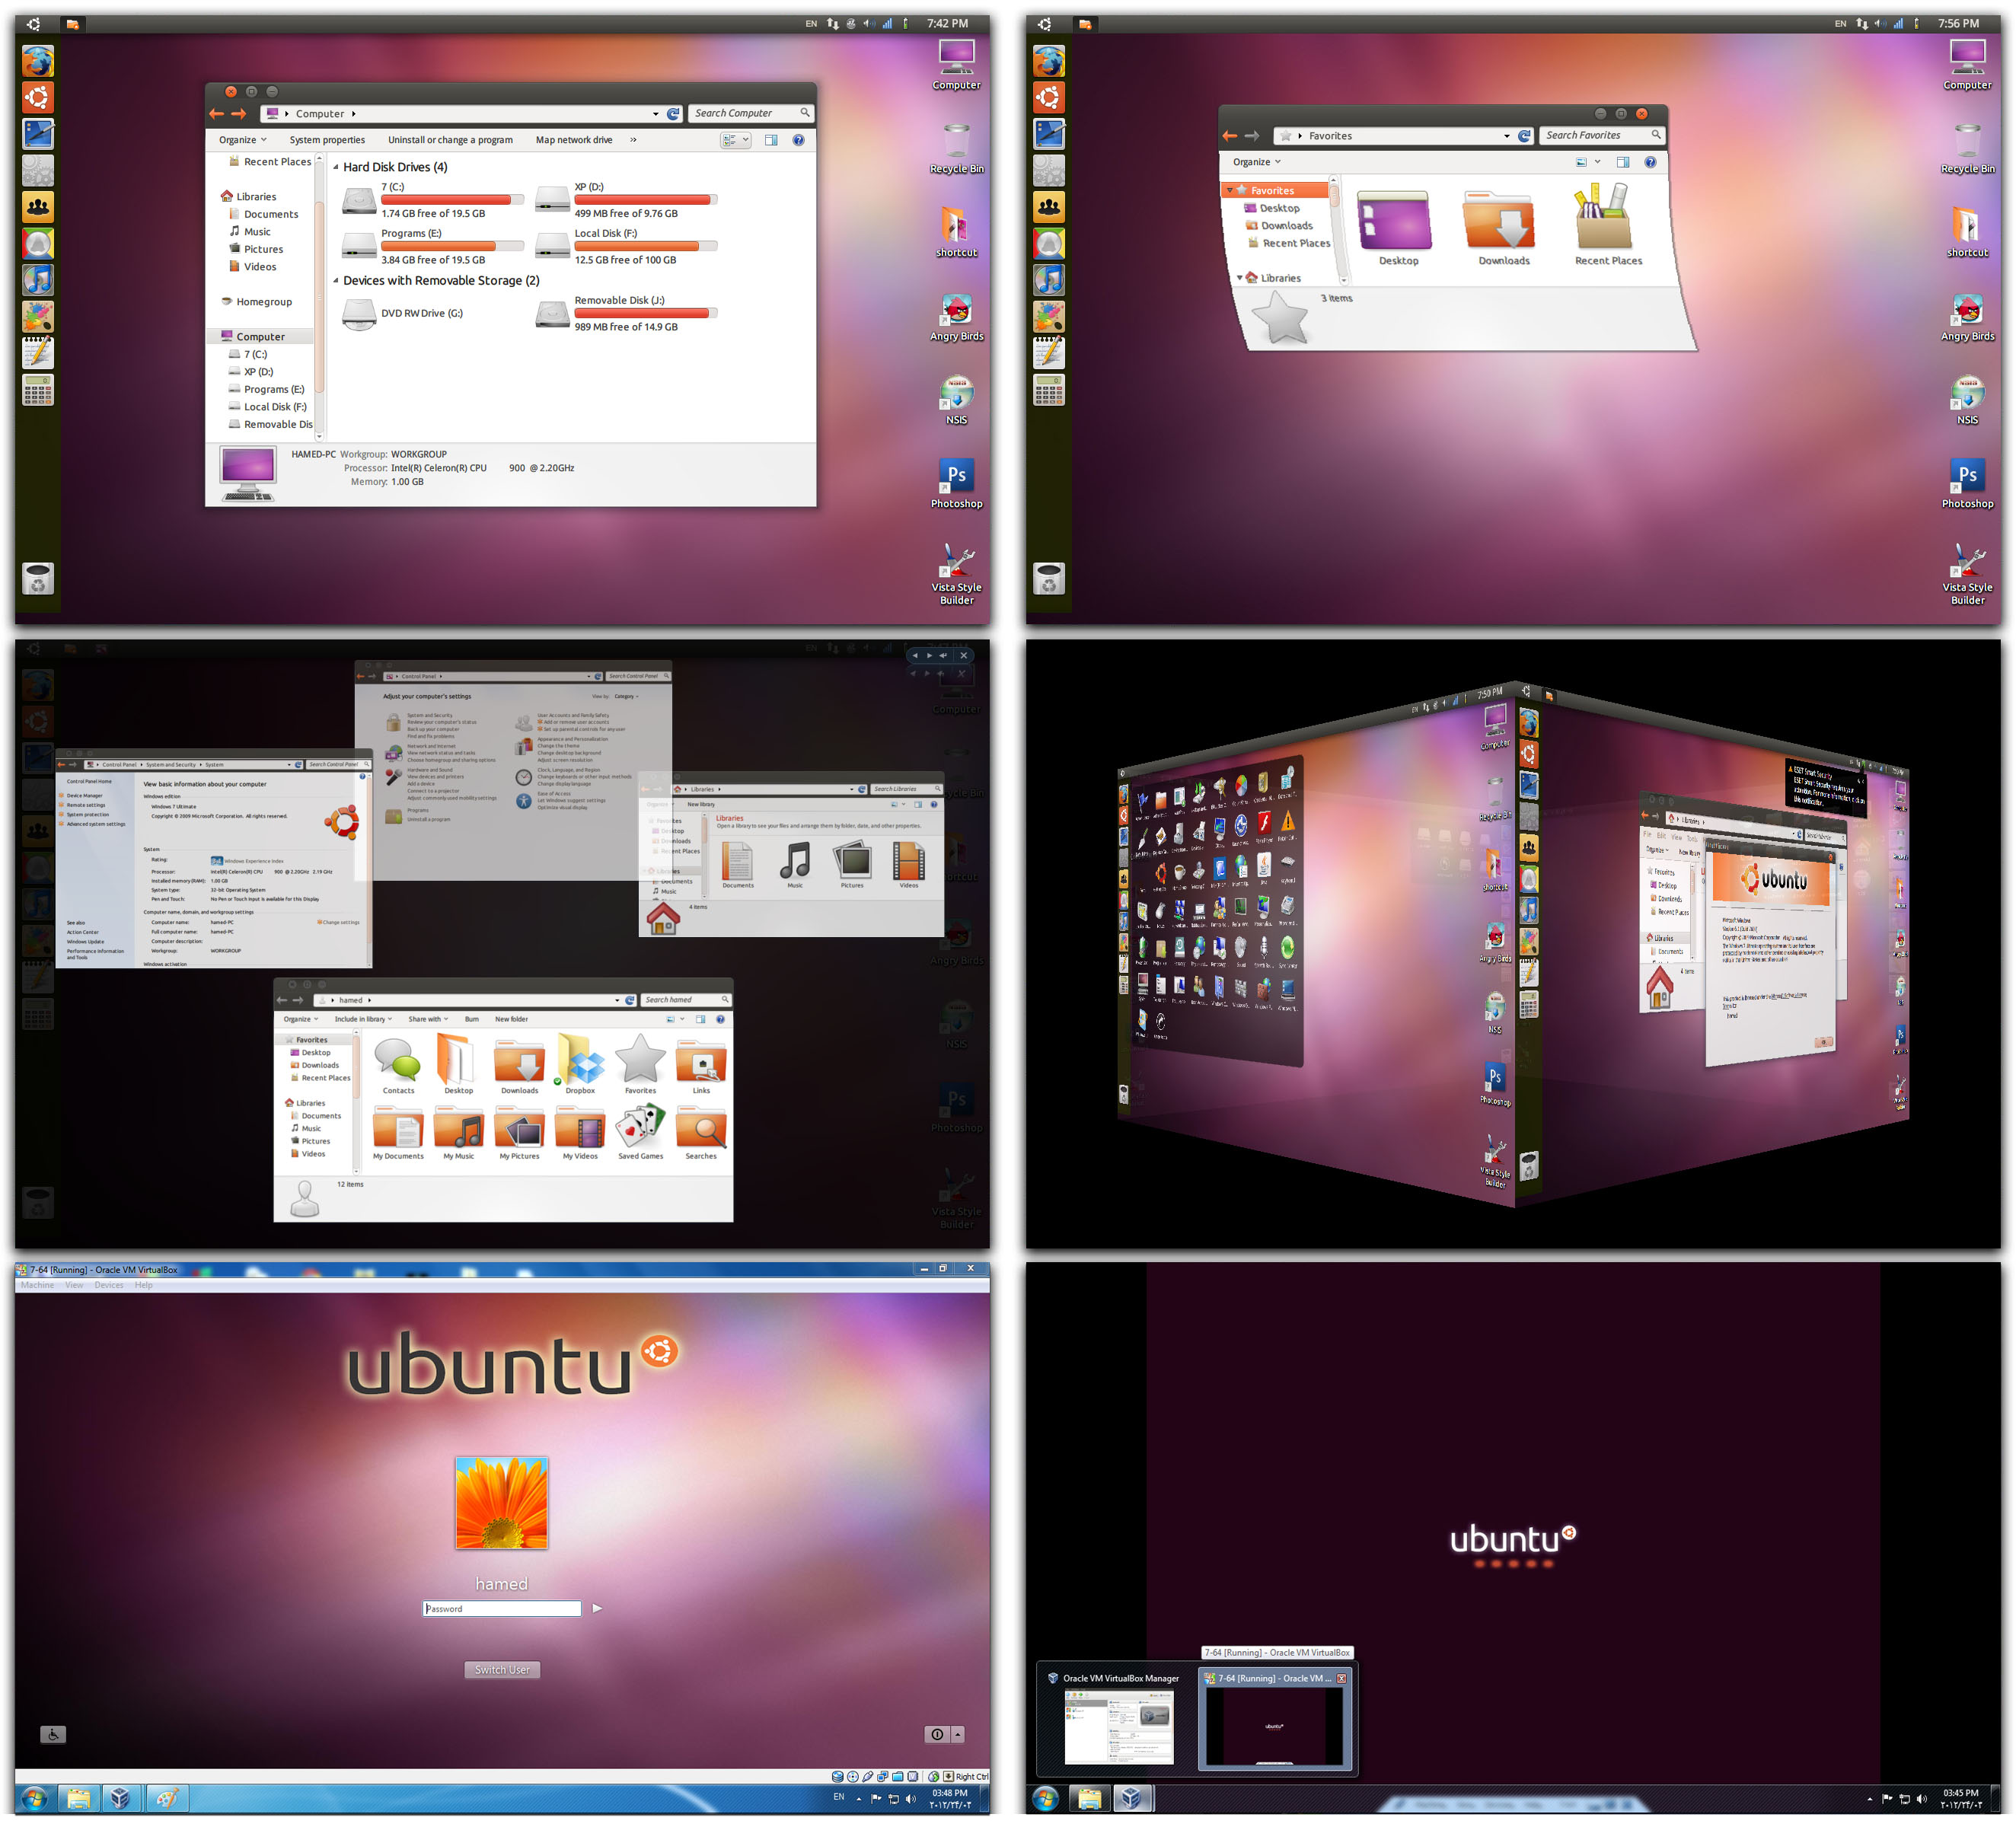 Download Ubuntu Skin Pack 9.0 For Windows 7 64 Bit